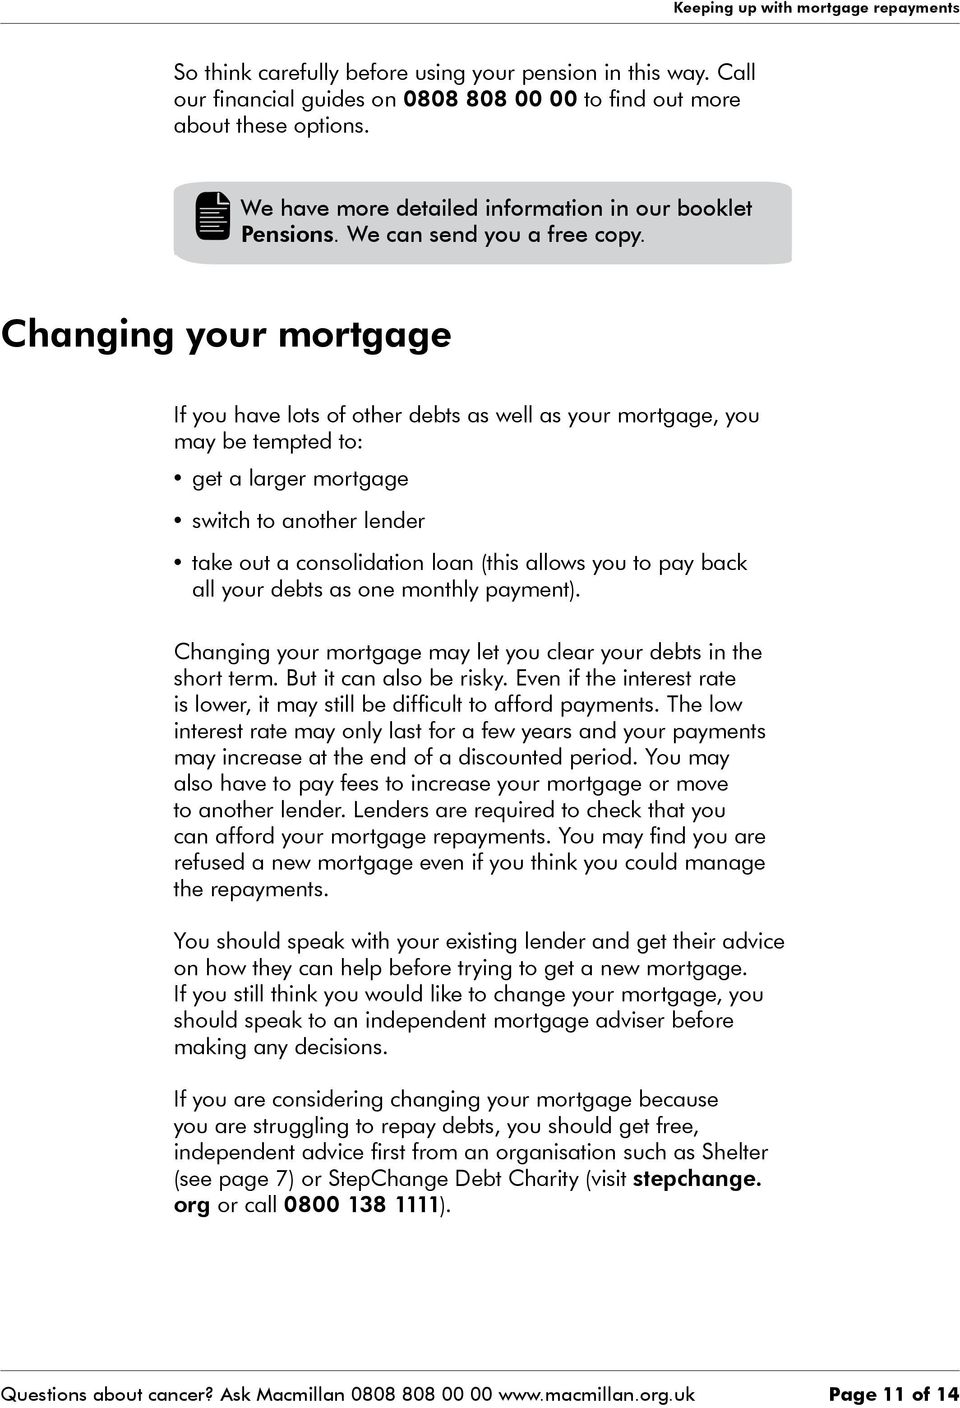 Changing your mortgage If you have lots of other debts as well as your mortgage, you may be tempted to: get a larger mortgage switch to another lender take out a consolidation loan (this allows you